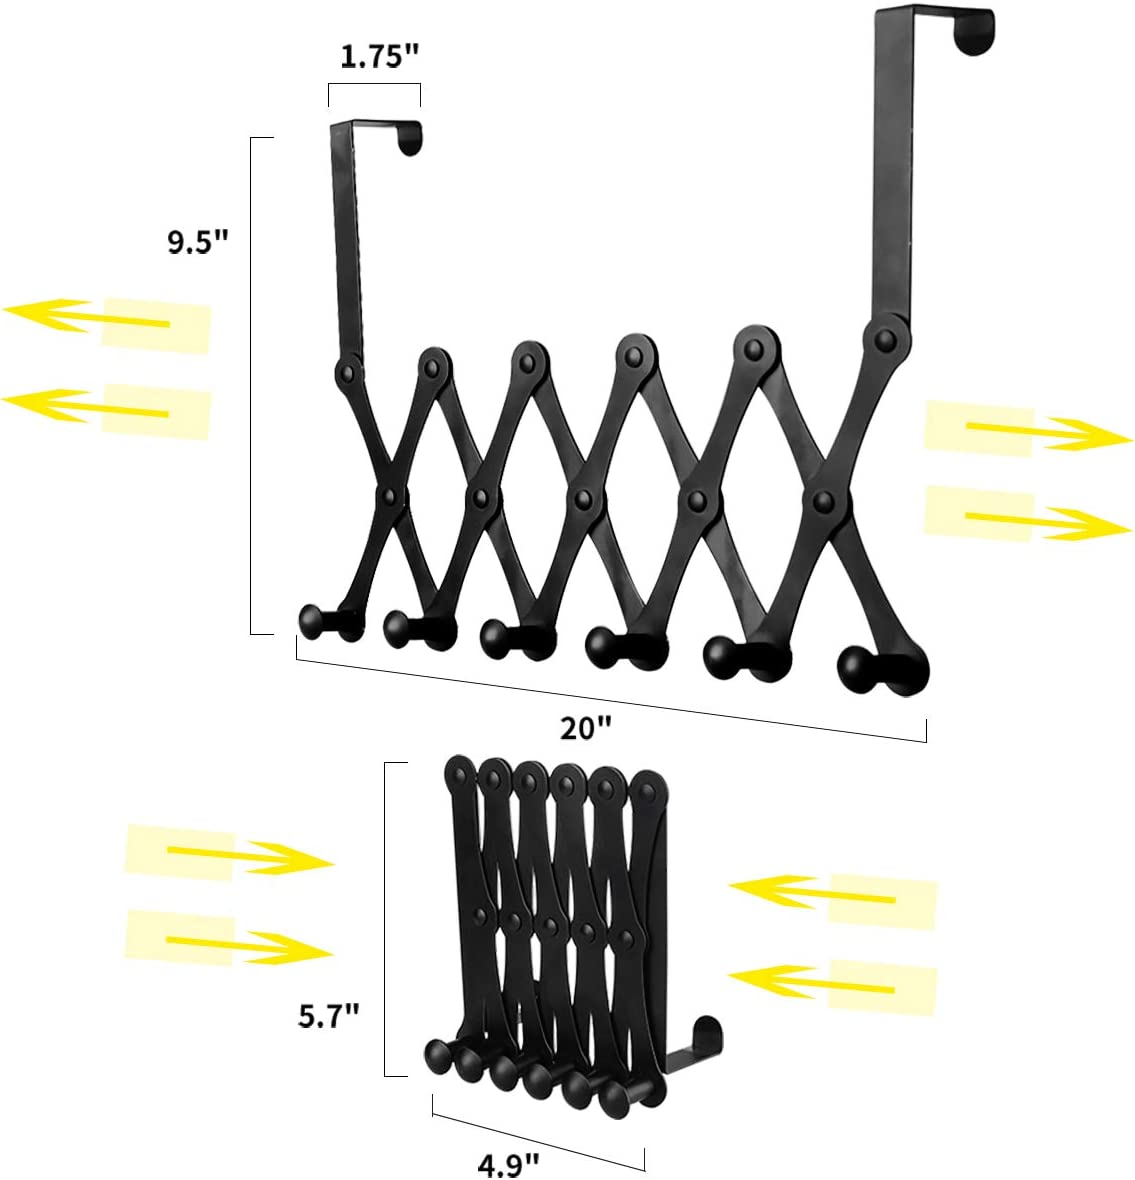 Expandable Heavy-Duty Organizer Rack for Coats Hats Hoodies Over The Door Hook Hanger 6 Peg Hooks Robe Bag Scarves Leashes Bath Towels,Towel Black - 6 Hook Stainless Steel